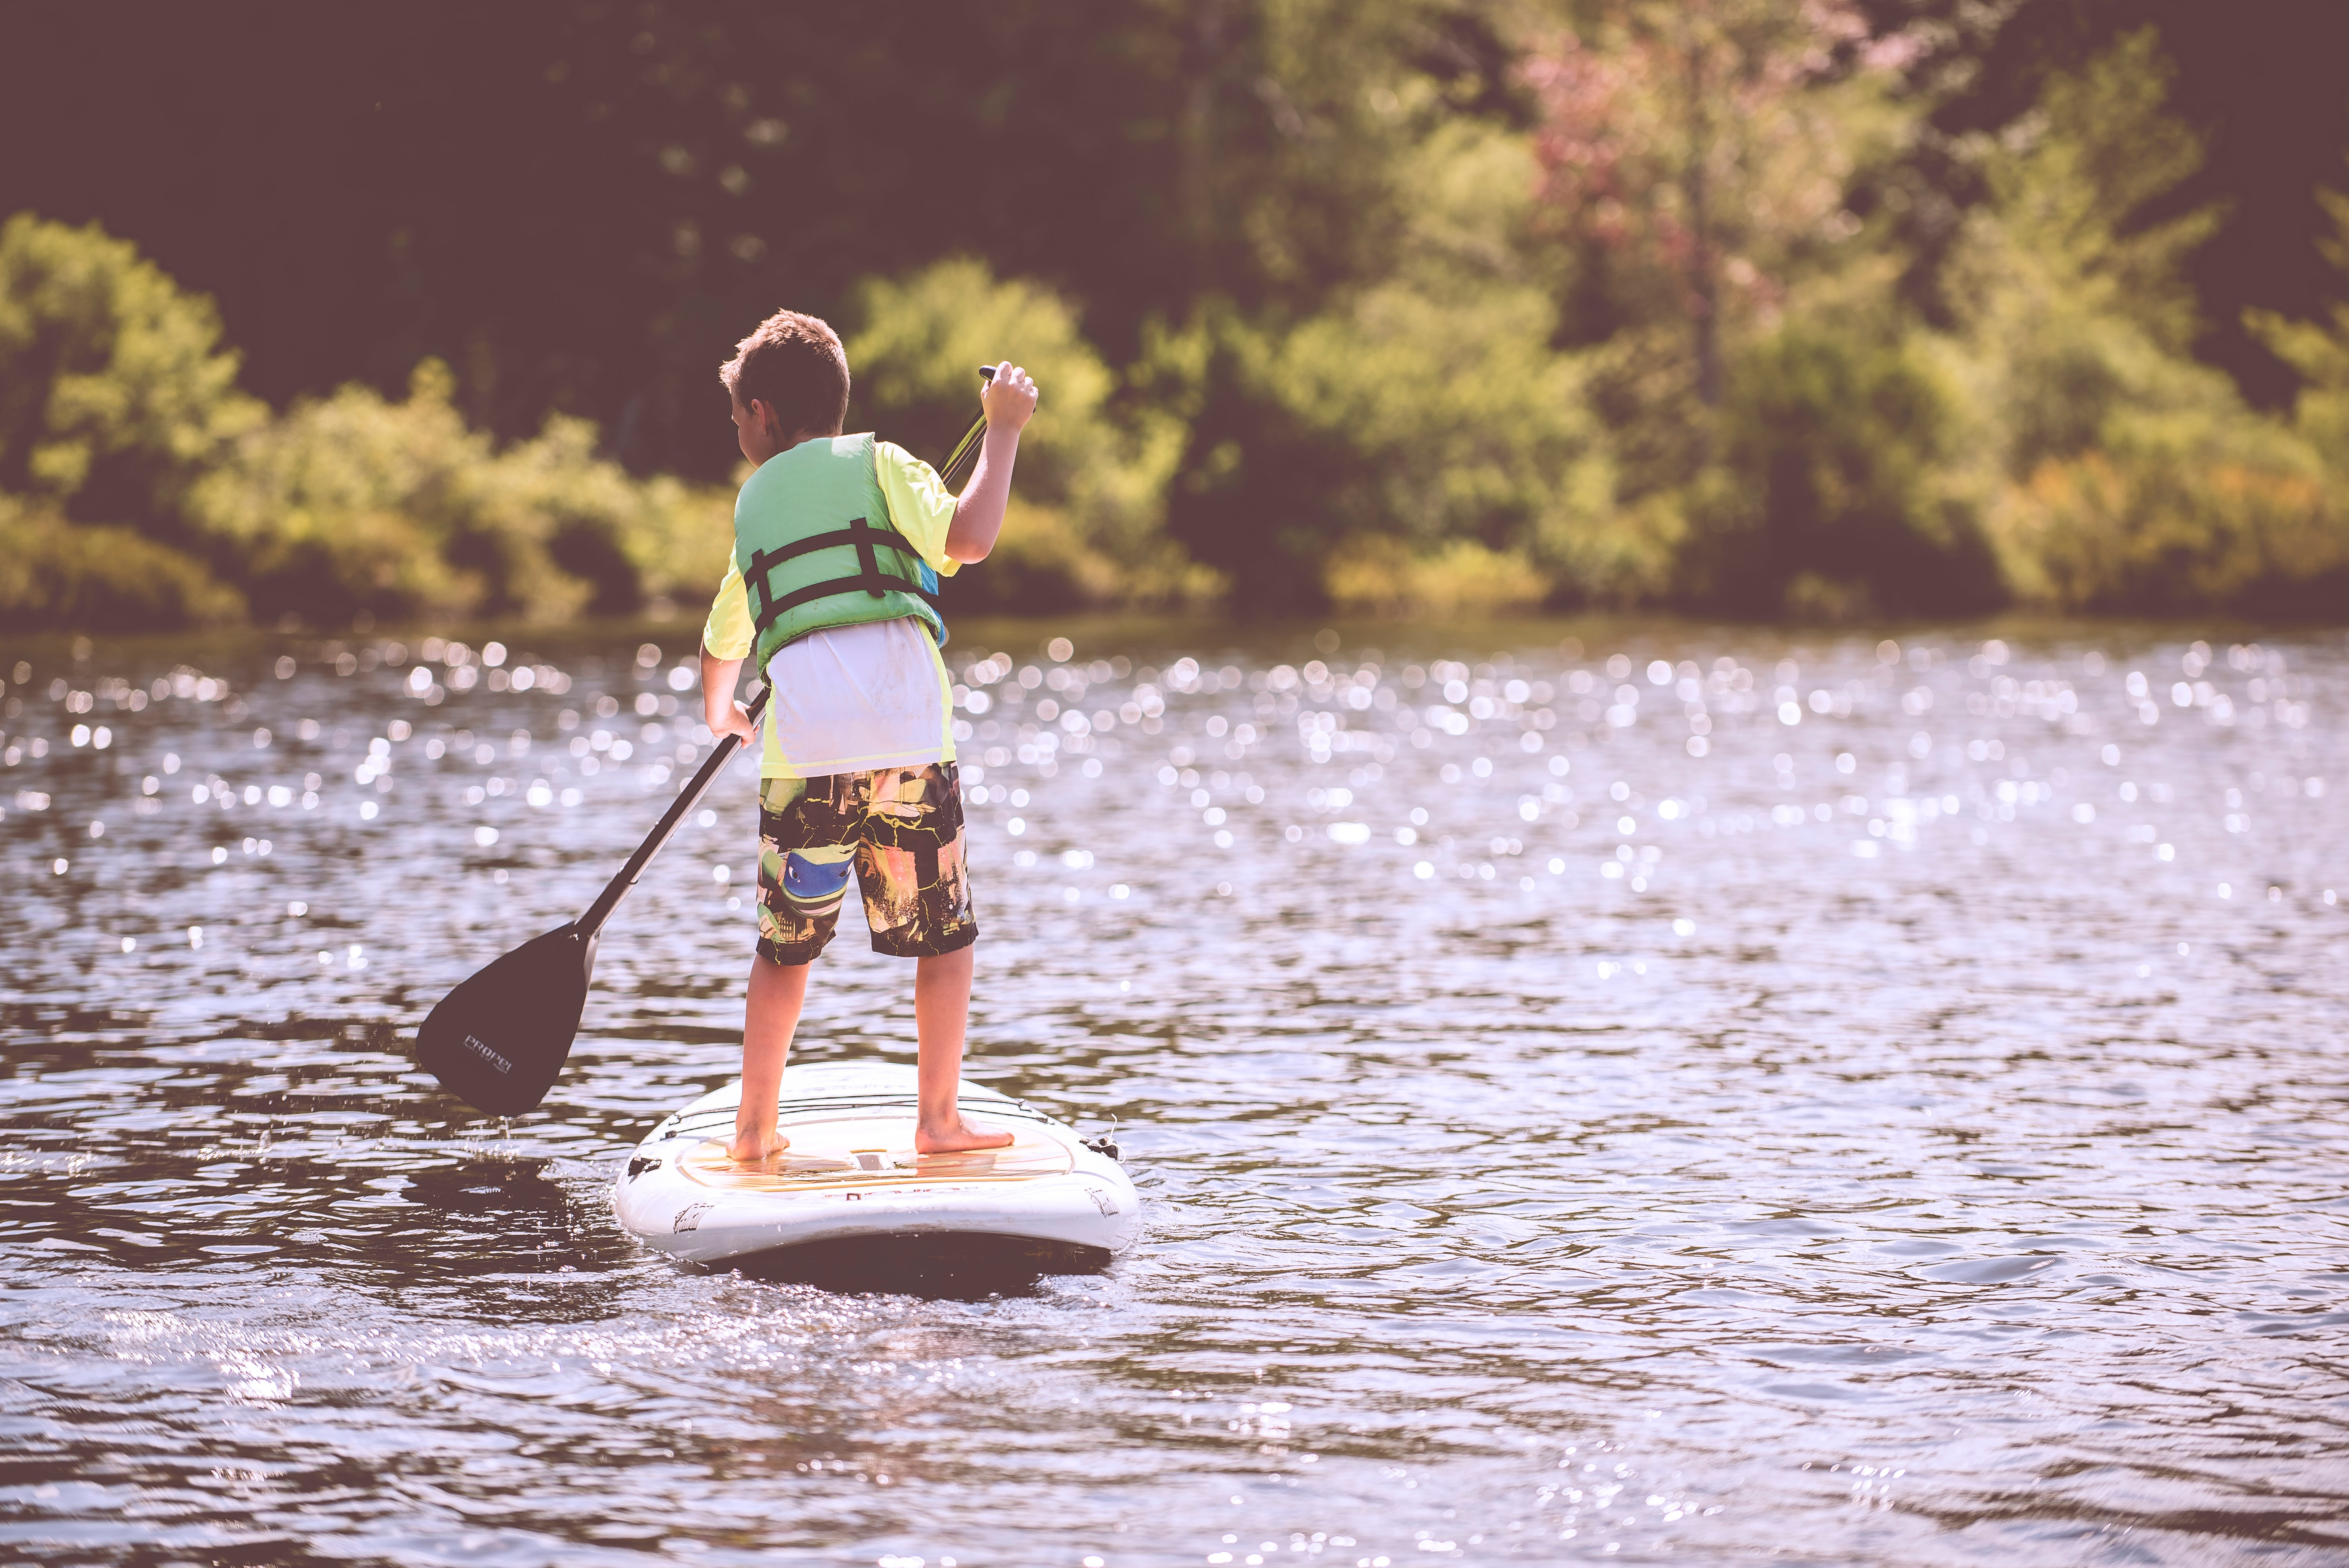 camp, paddleboard, boy, water, boat